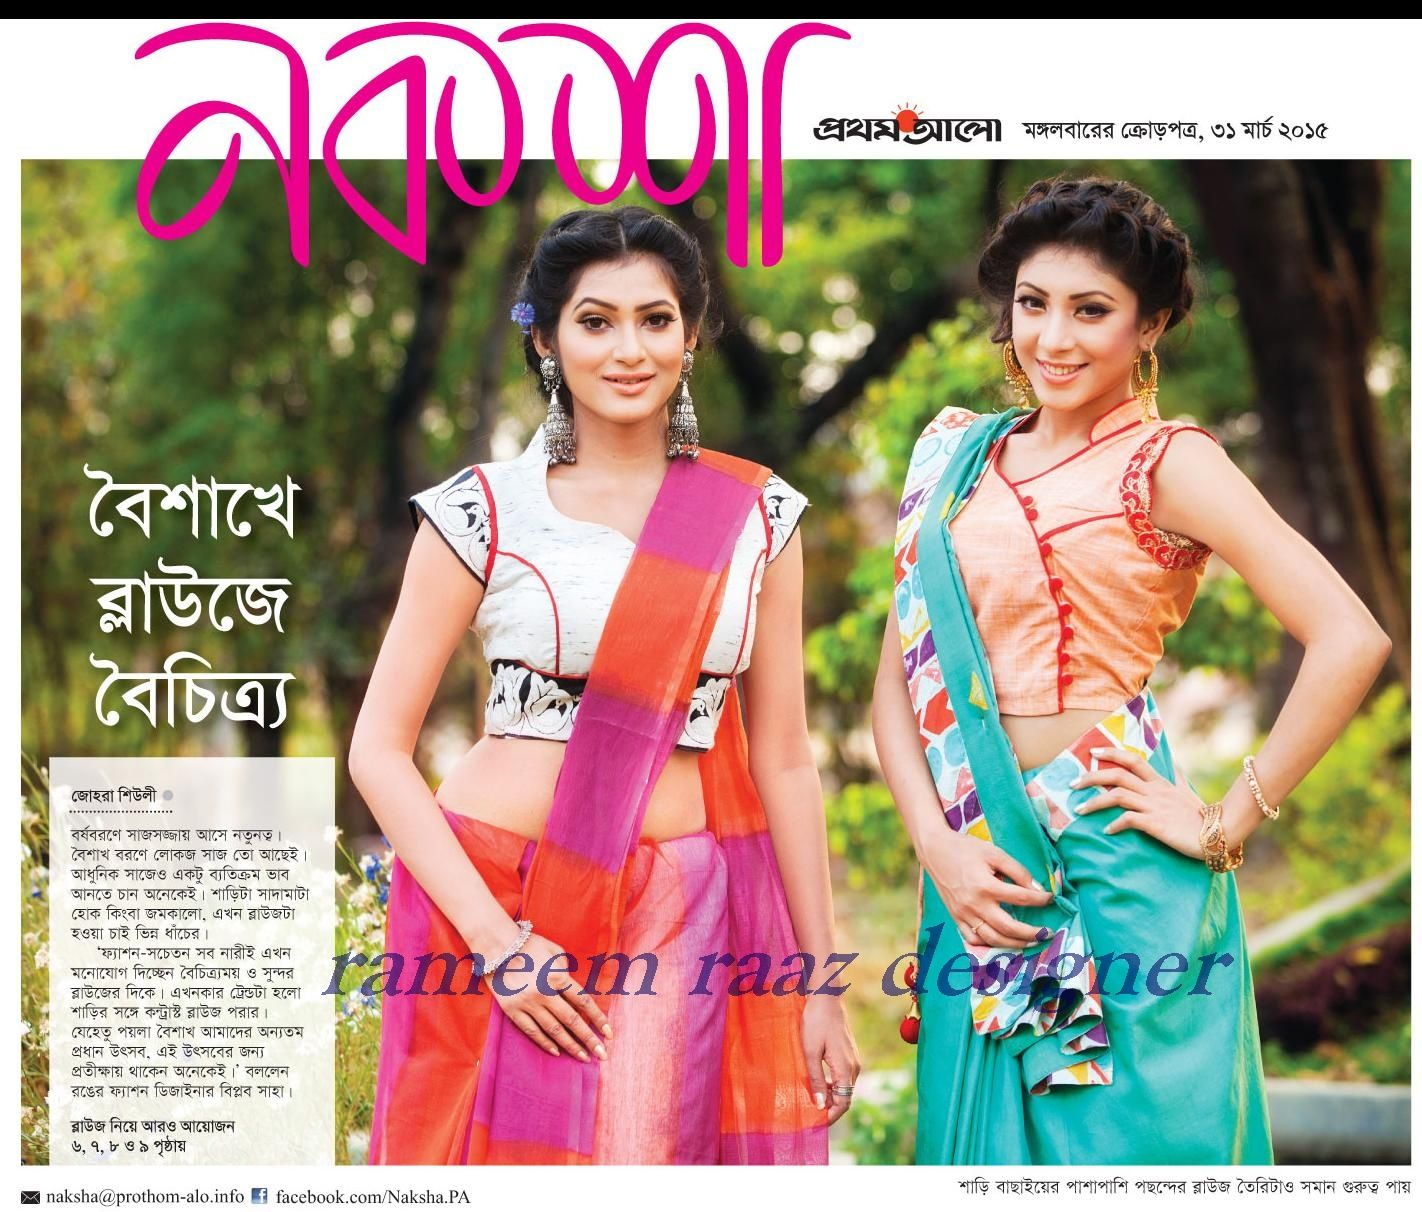 daily prothom alo news paper covering rameem raaz design